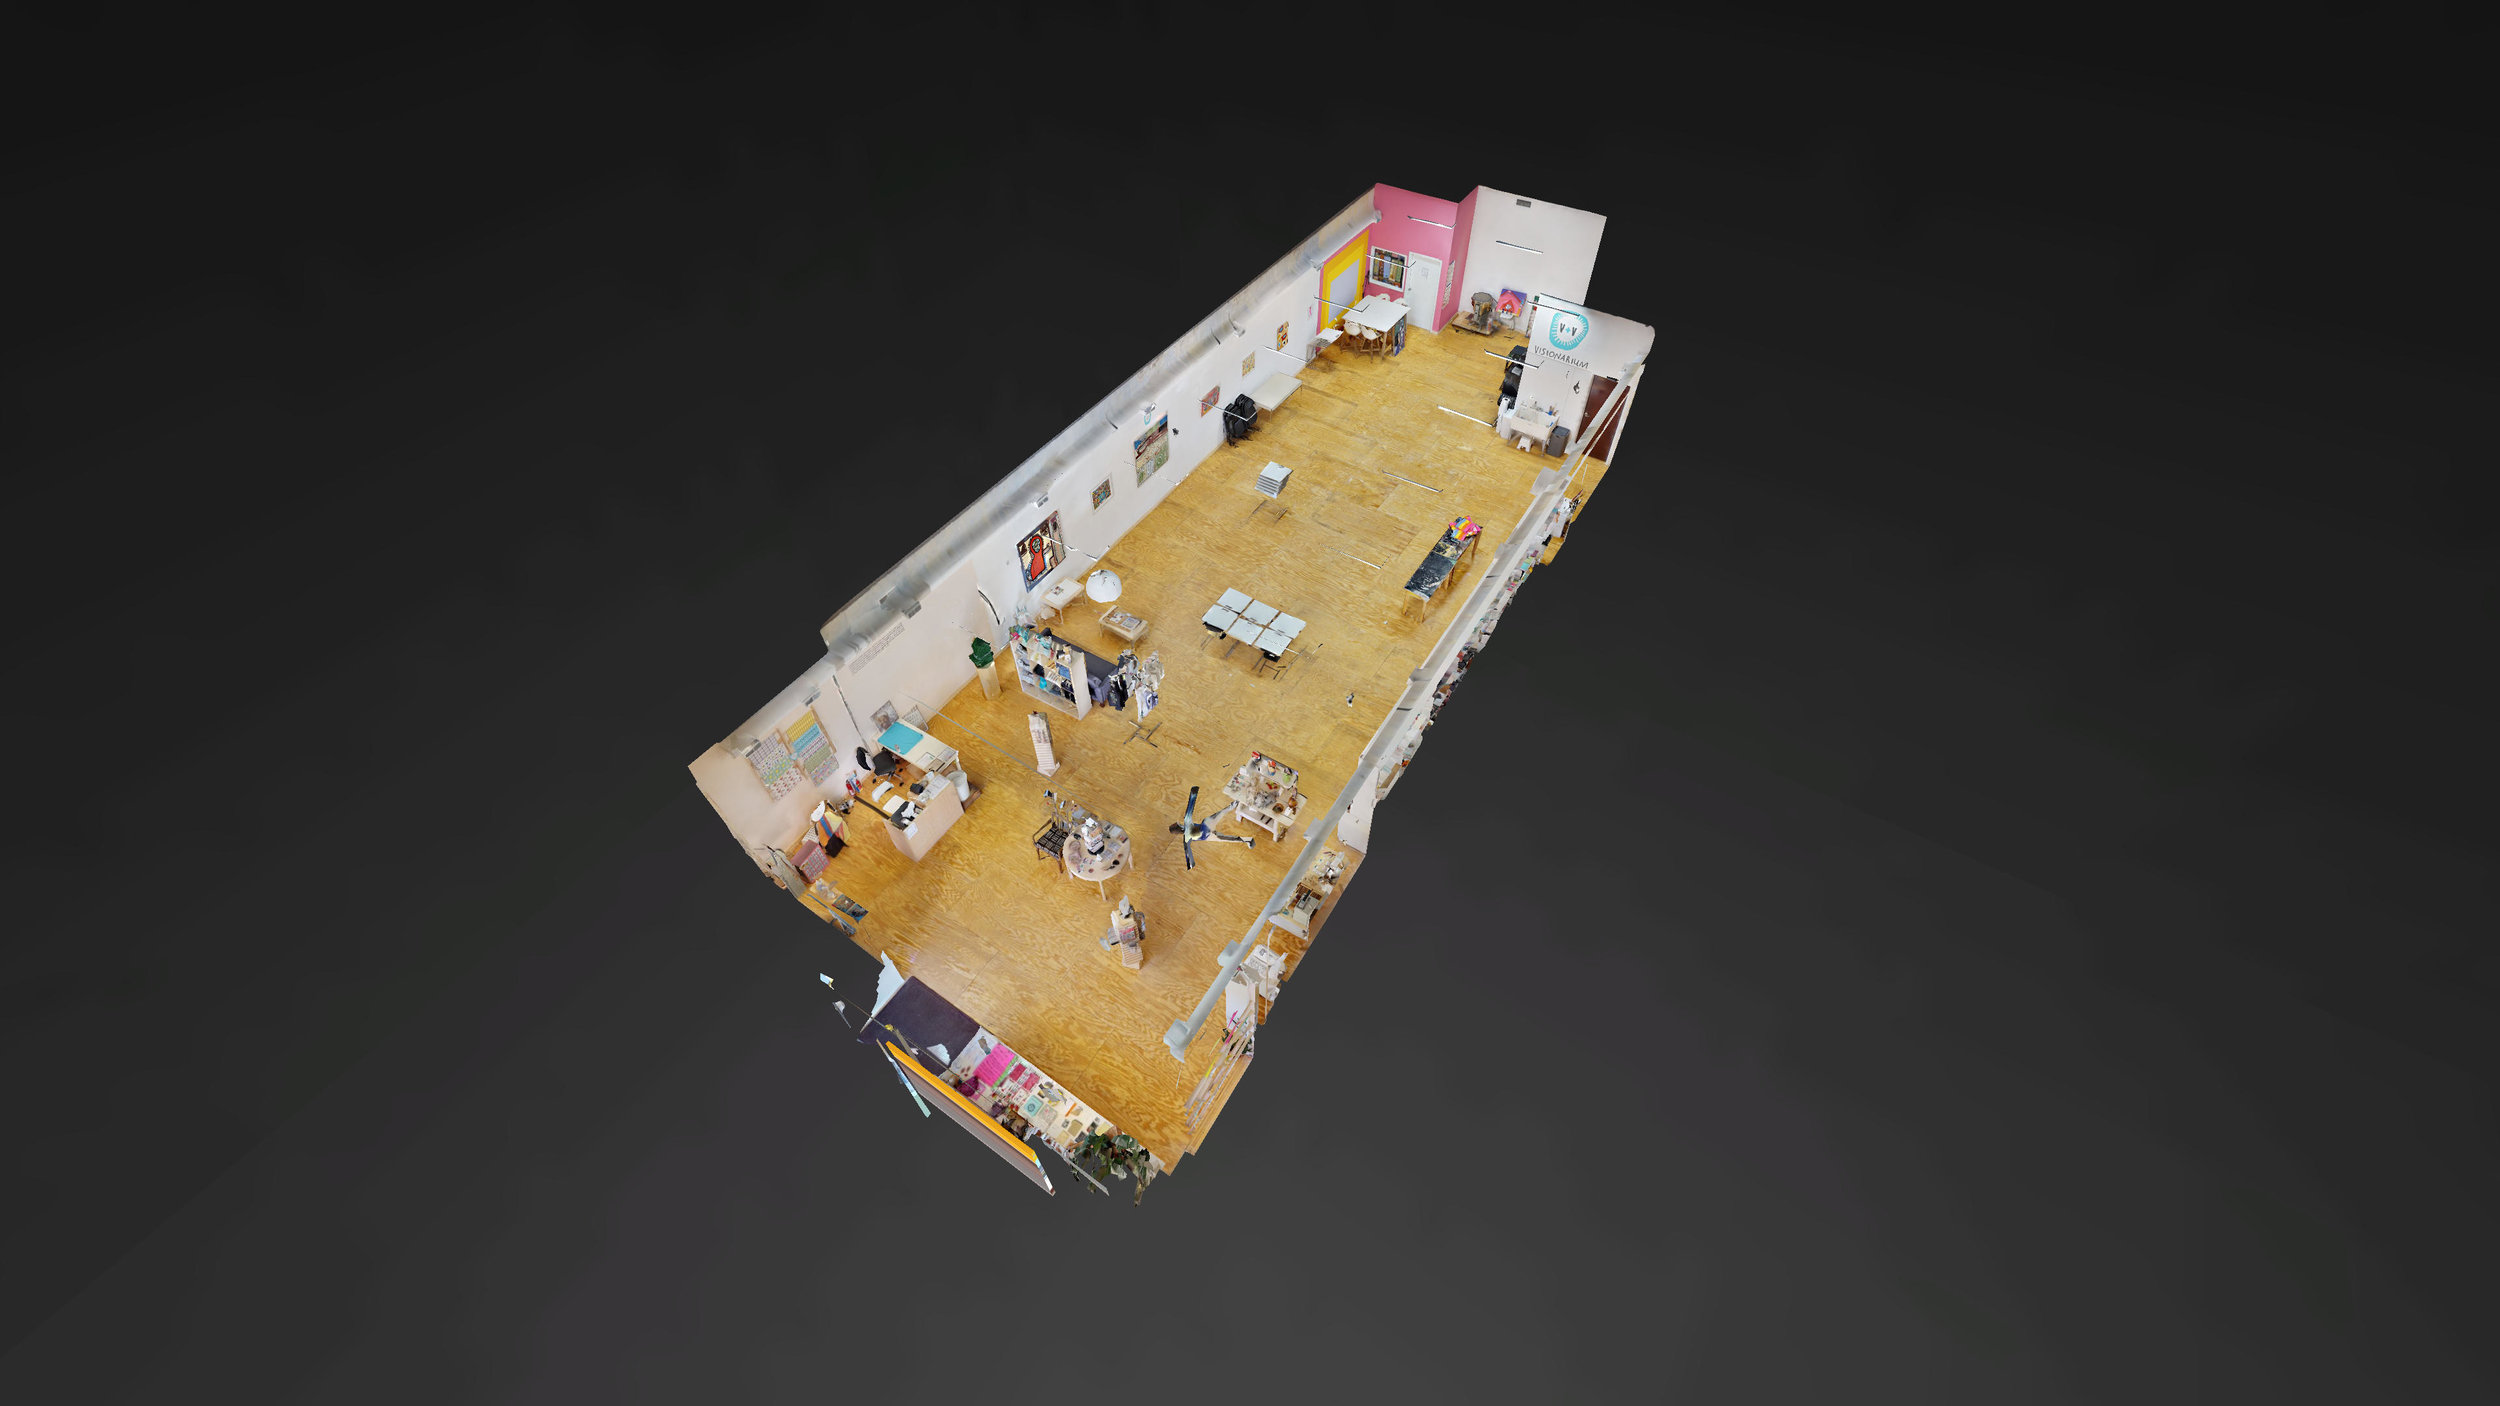 Xrxi1FpttpX - Doll House View.jpg